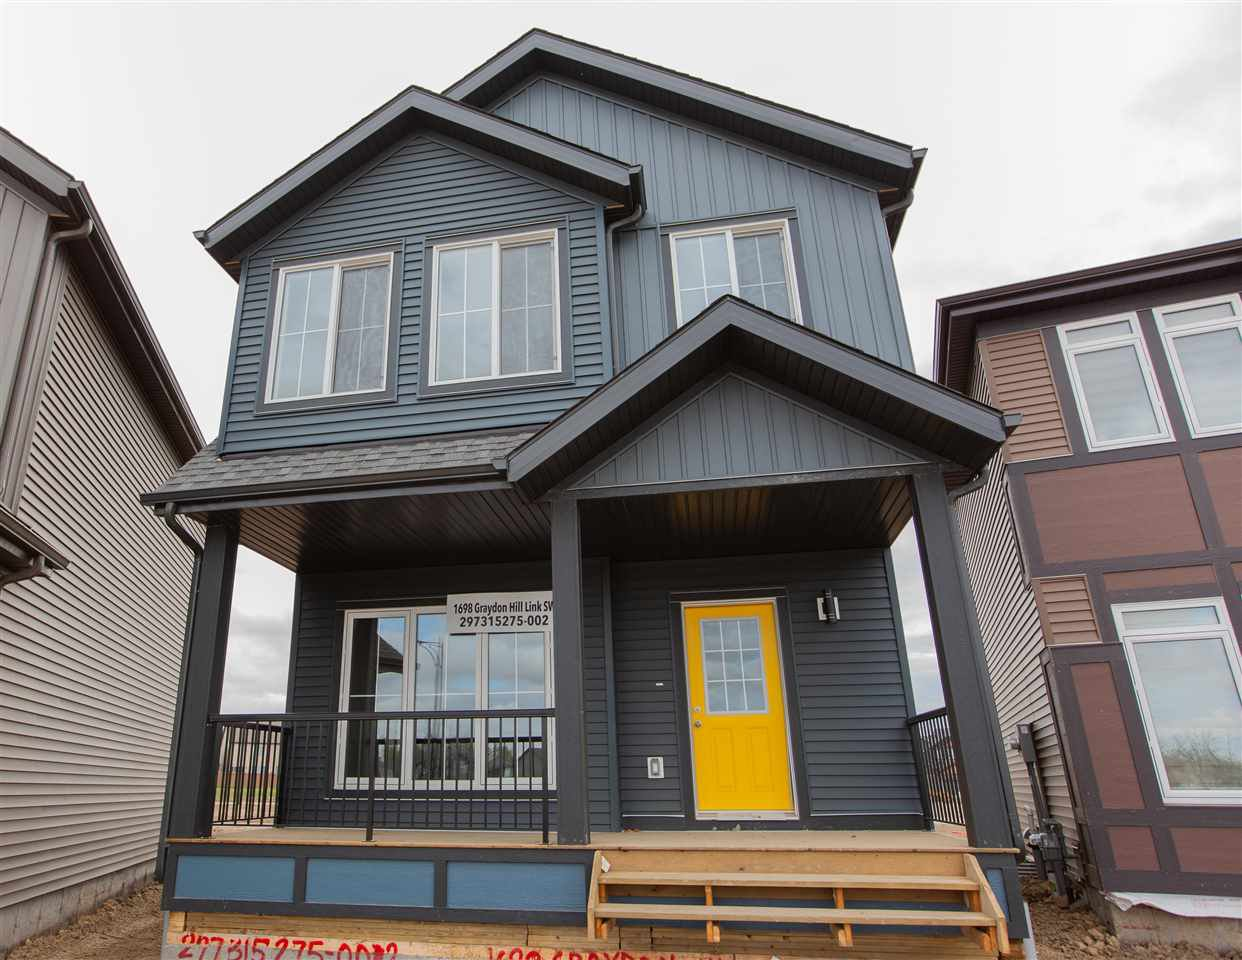 Main Photo: 1698 Graydon Hill Link in Edmonton: Zone 55 House for sale : MLS®# E4174838